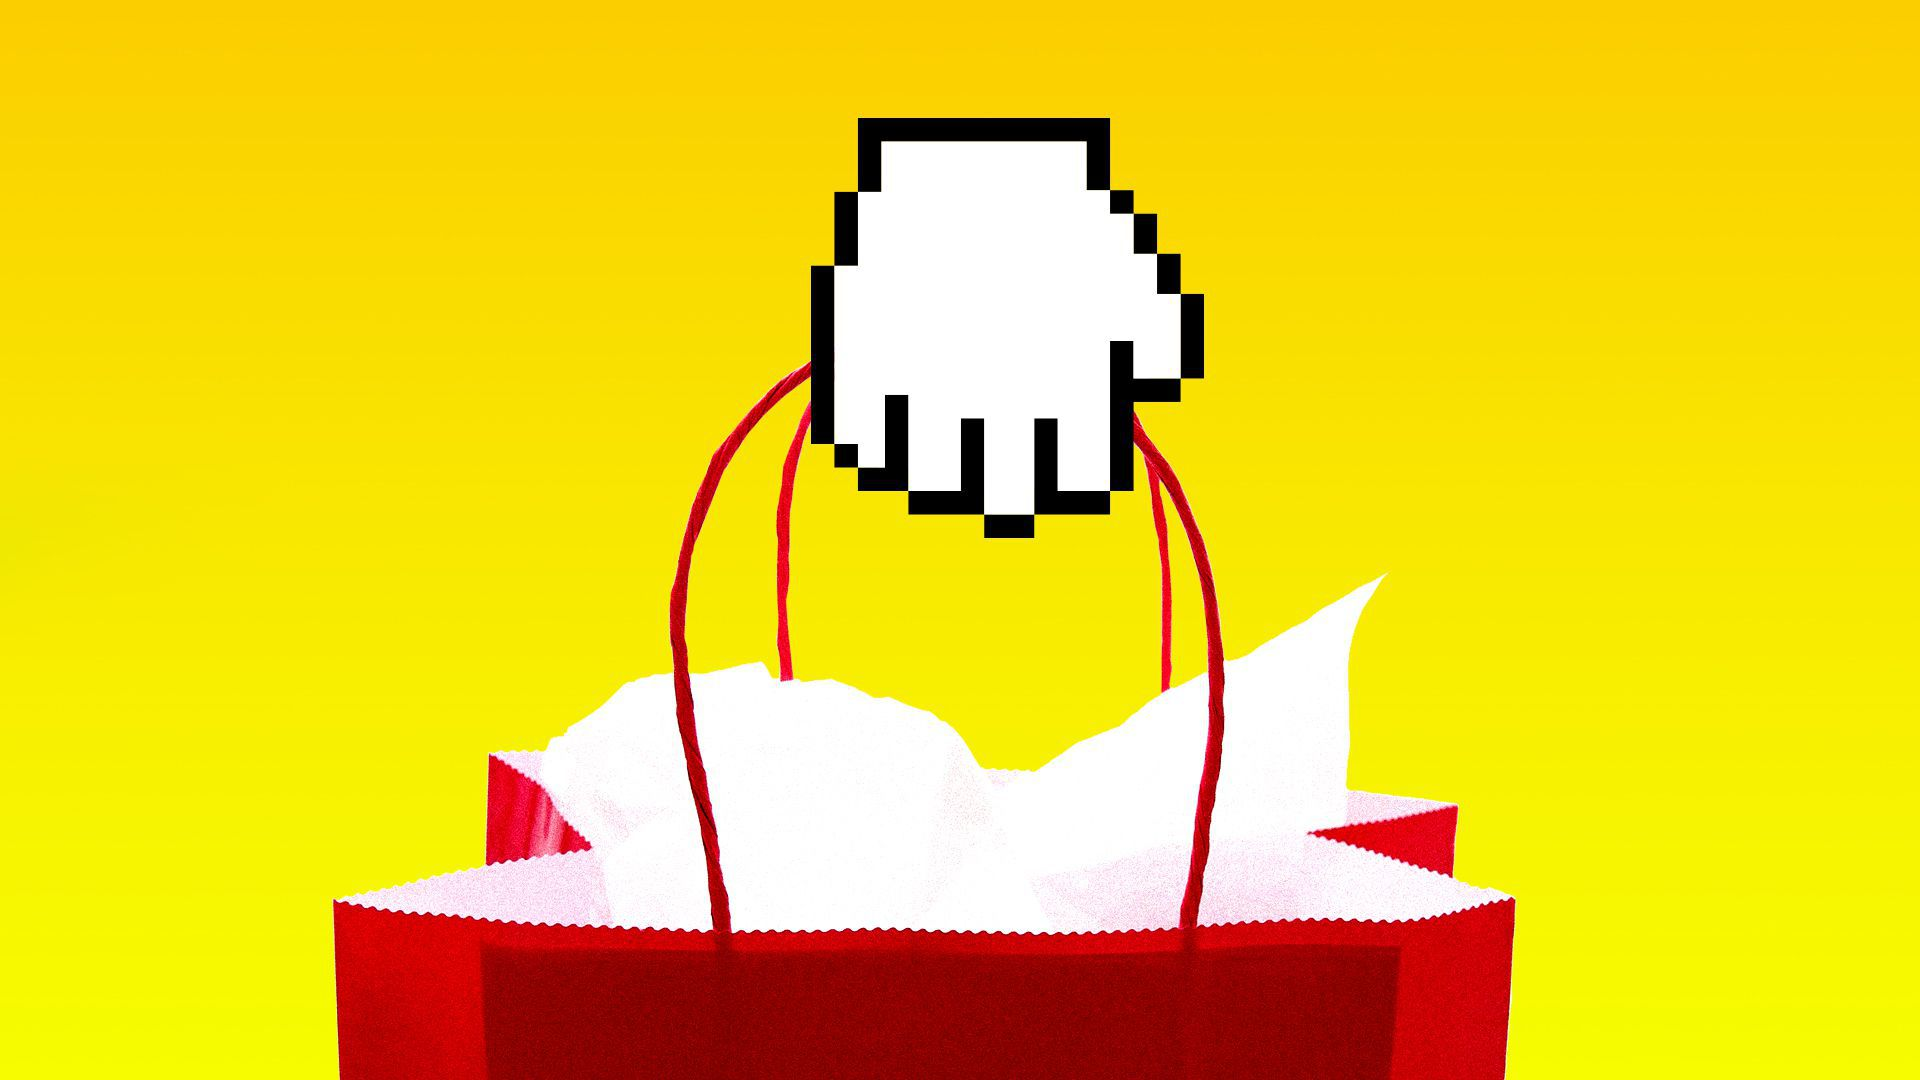 An illustration of a shopping bag with a hand icon, representing the intersection of digital and real-world commerce.